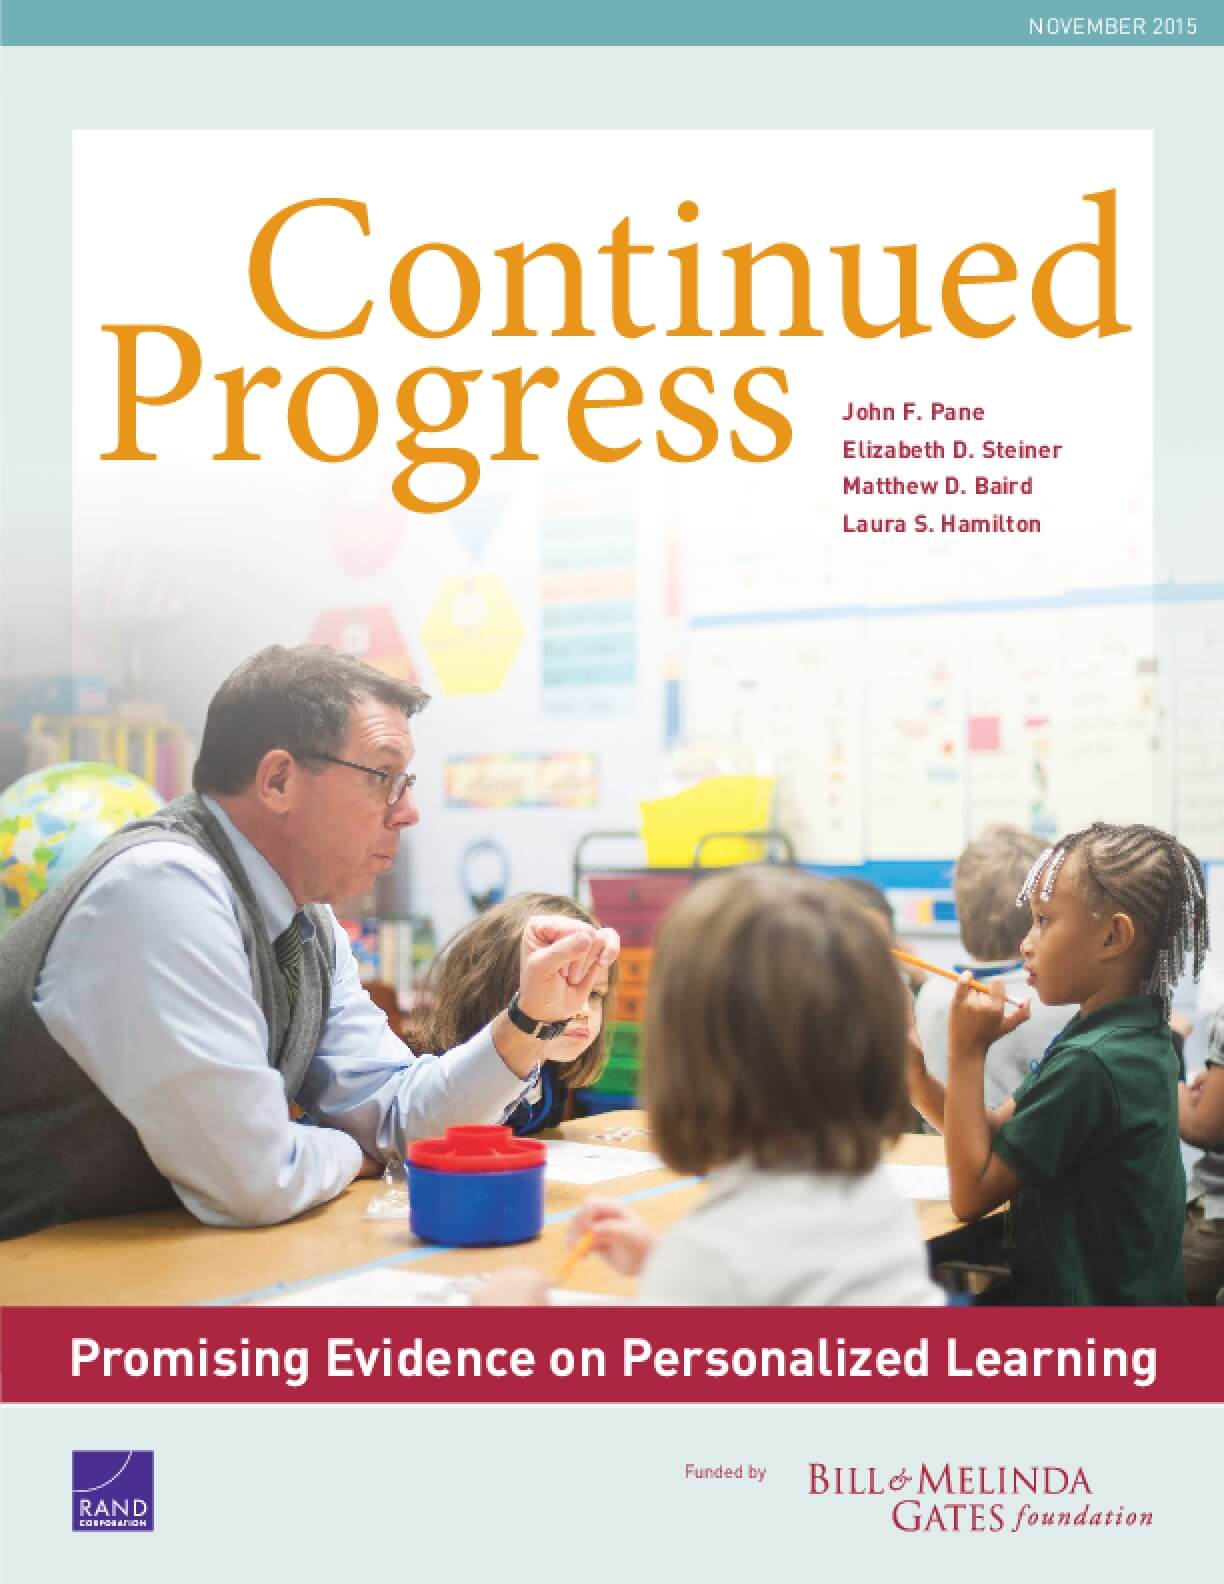 Continued Progress: Promising Evidence on Personalized Learning